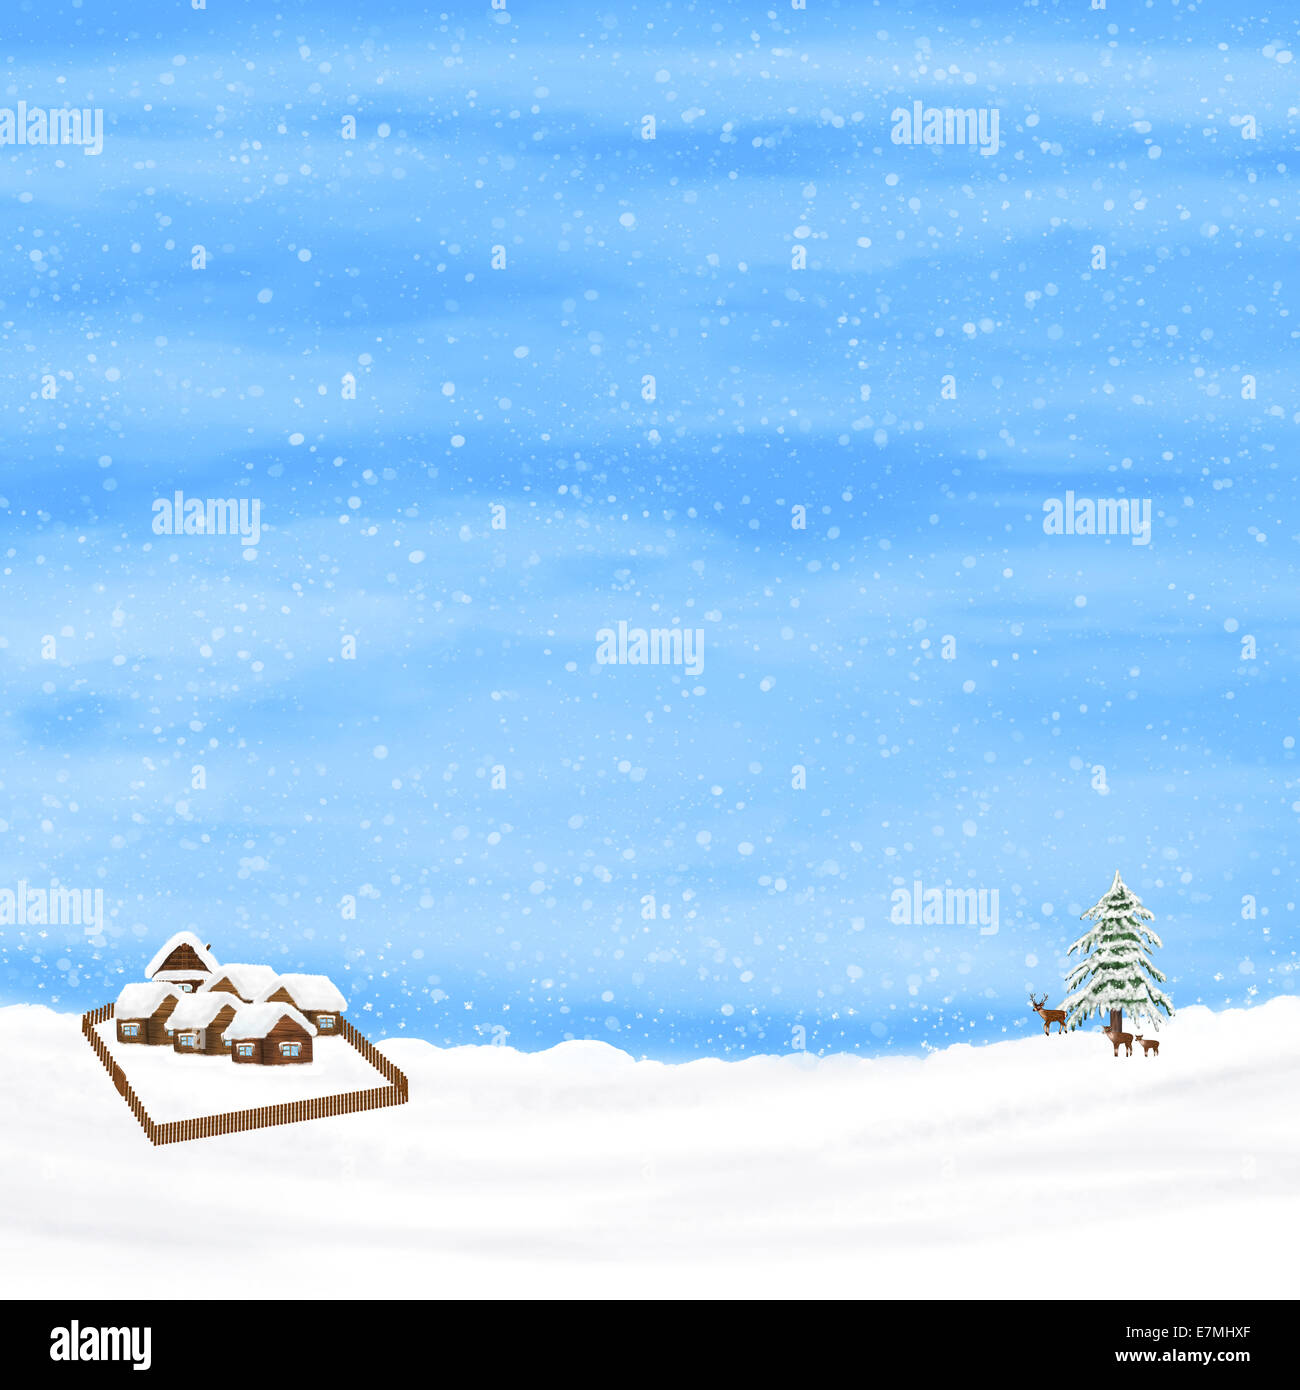 Pine tree, deers, small rustic houses on a winter blue sky background. - Stock Image